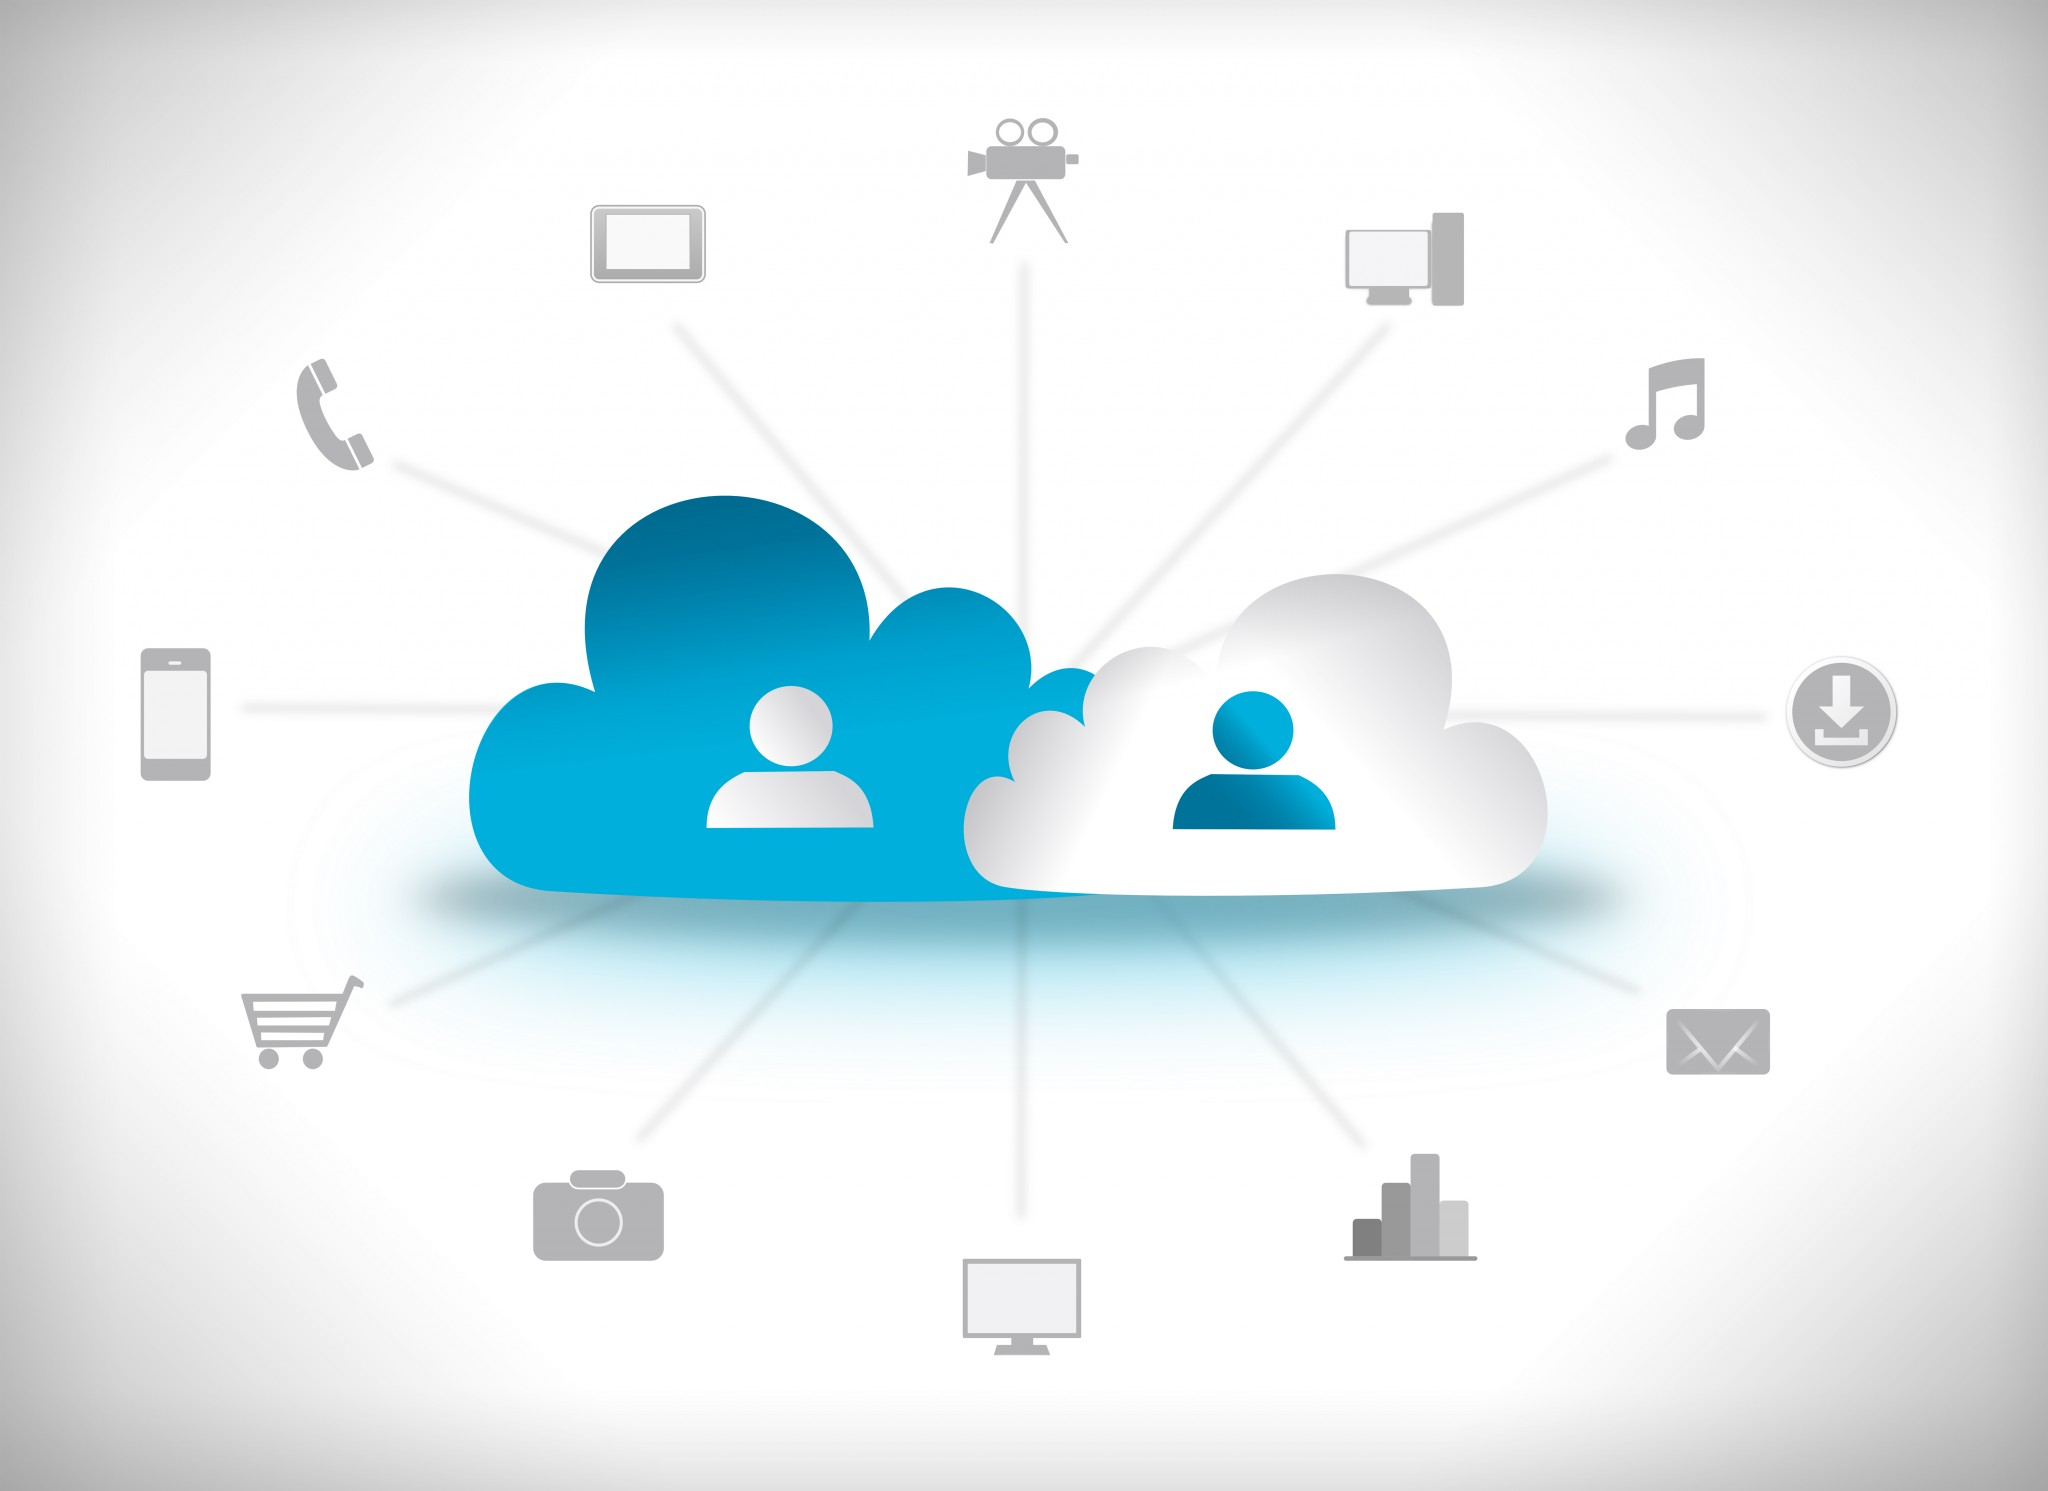 Possible components of the public cloud